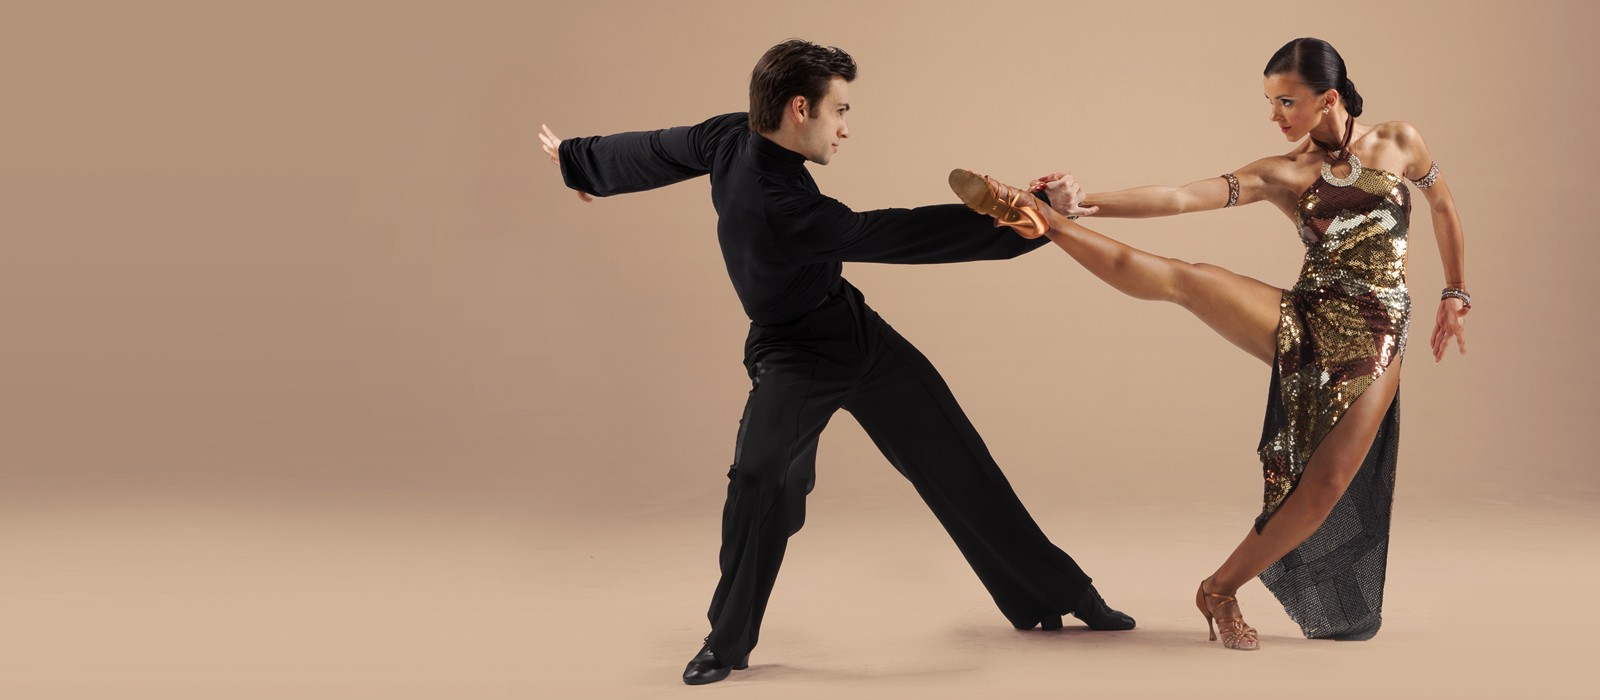 image - Elegant footwear for ballroom & latin dance.